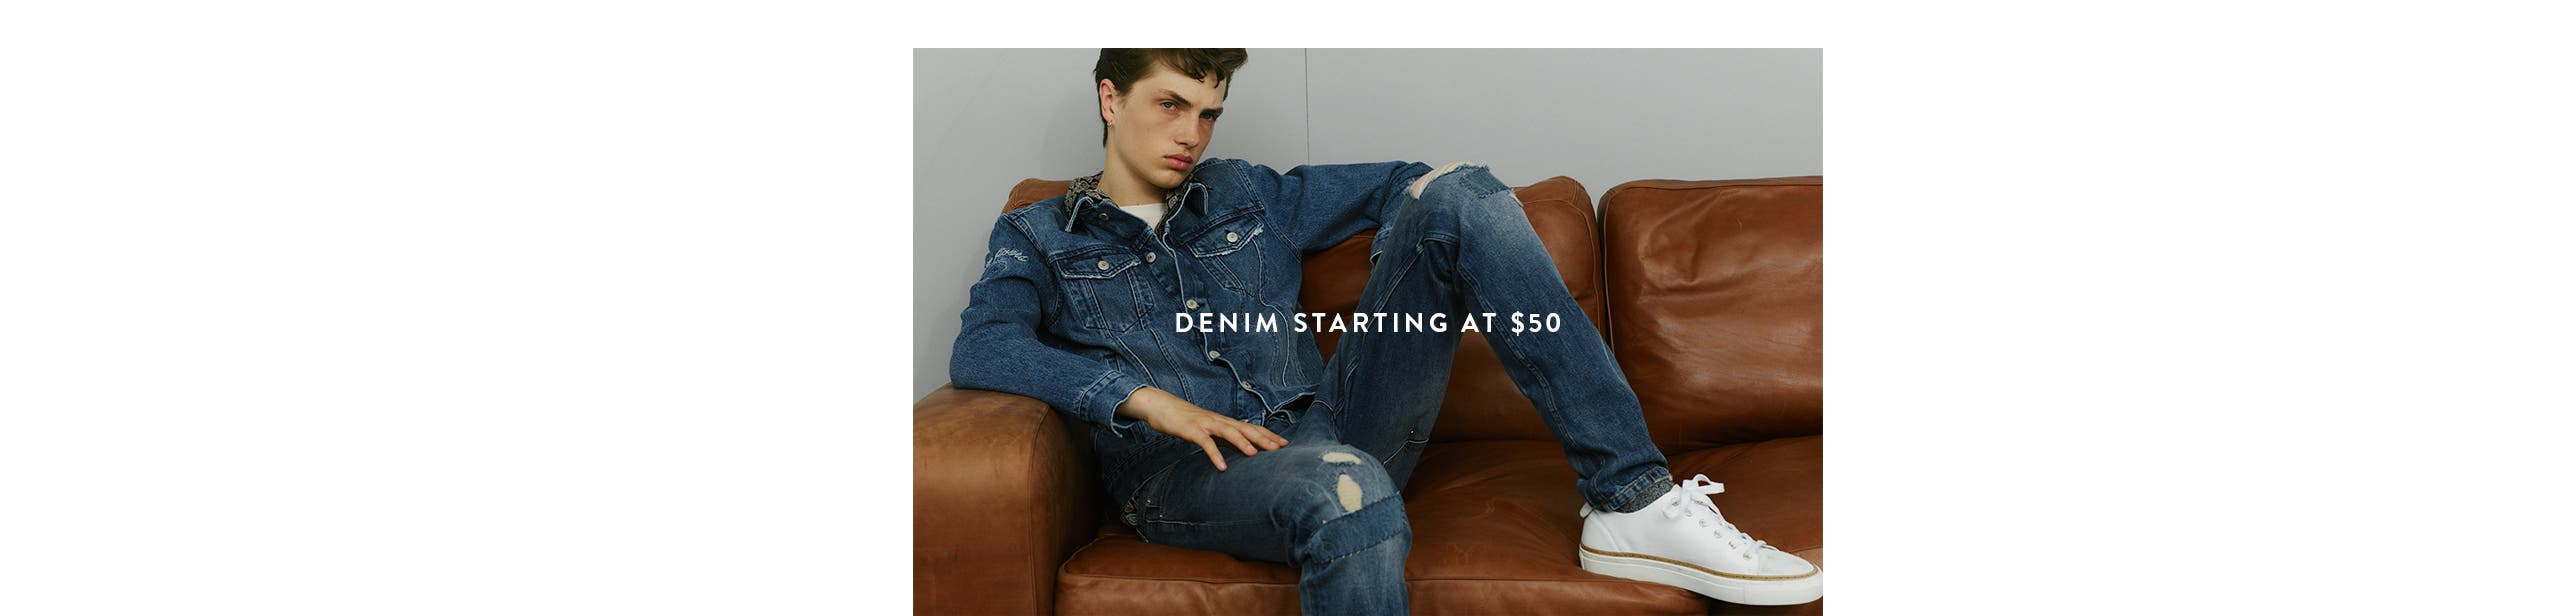 Denim starting at $50.